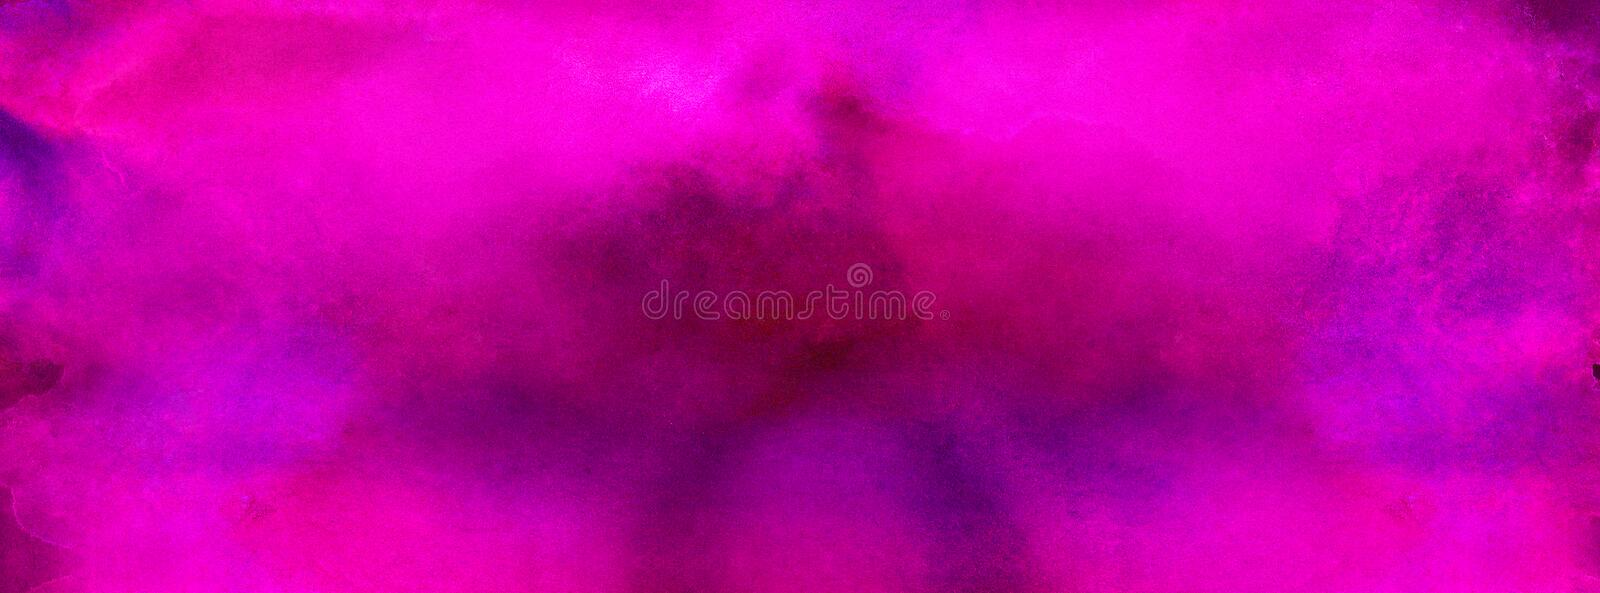 Bright abstract pink paper texture water color painted illustration. Light magenta ink watercolor on black background stock images